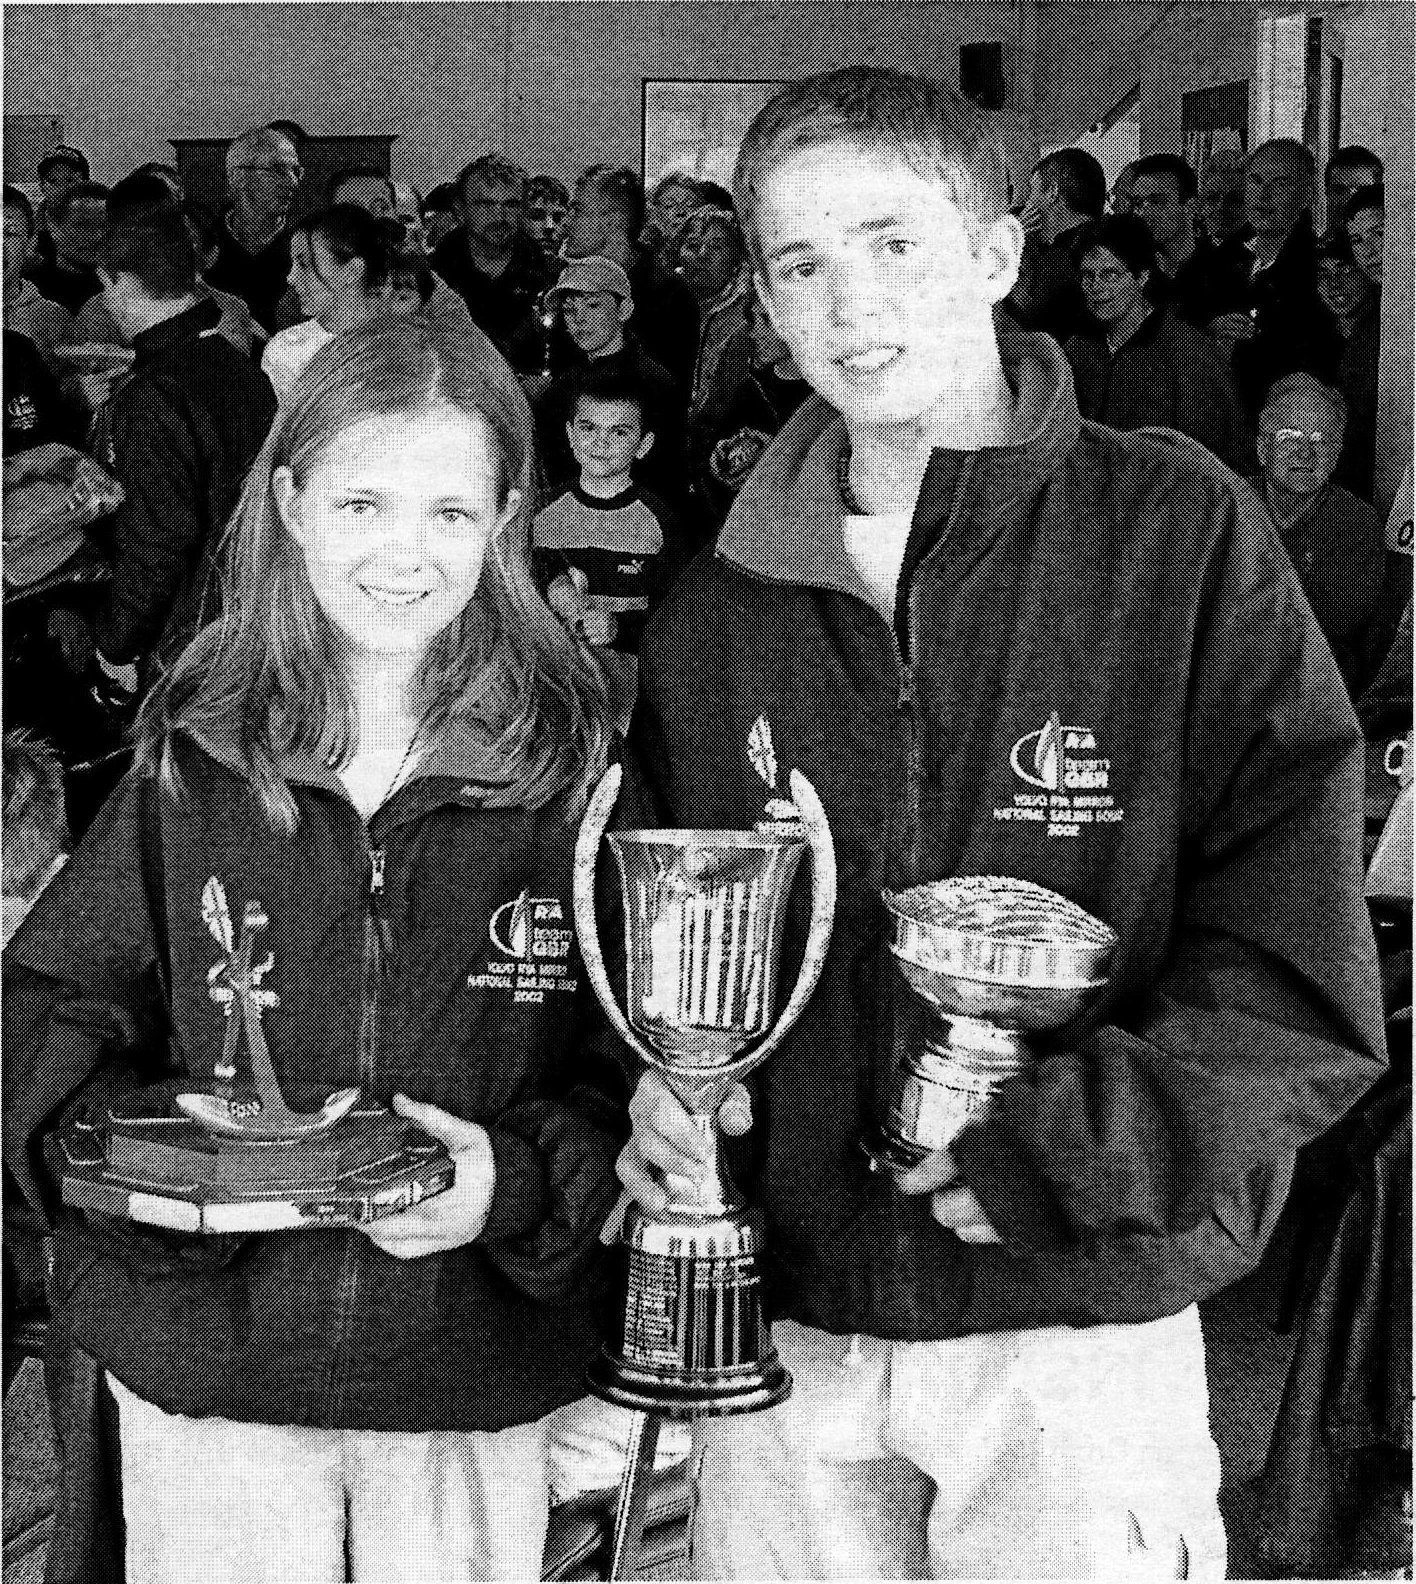 A boy and a girl holding their trophies